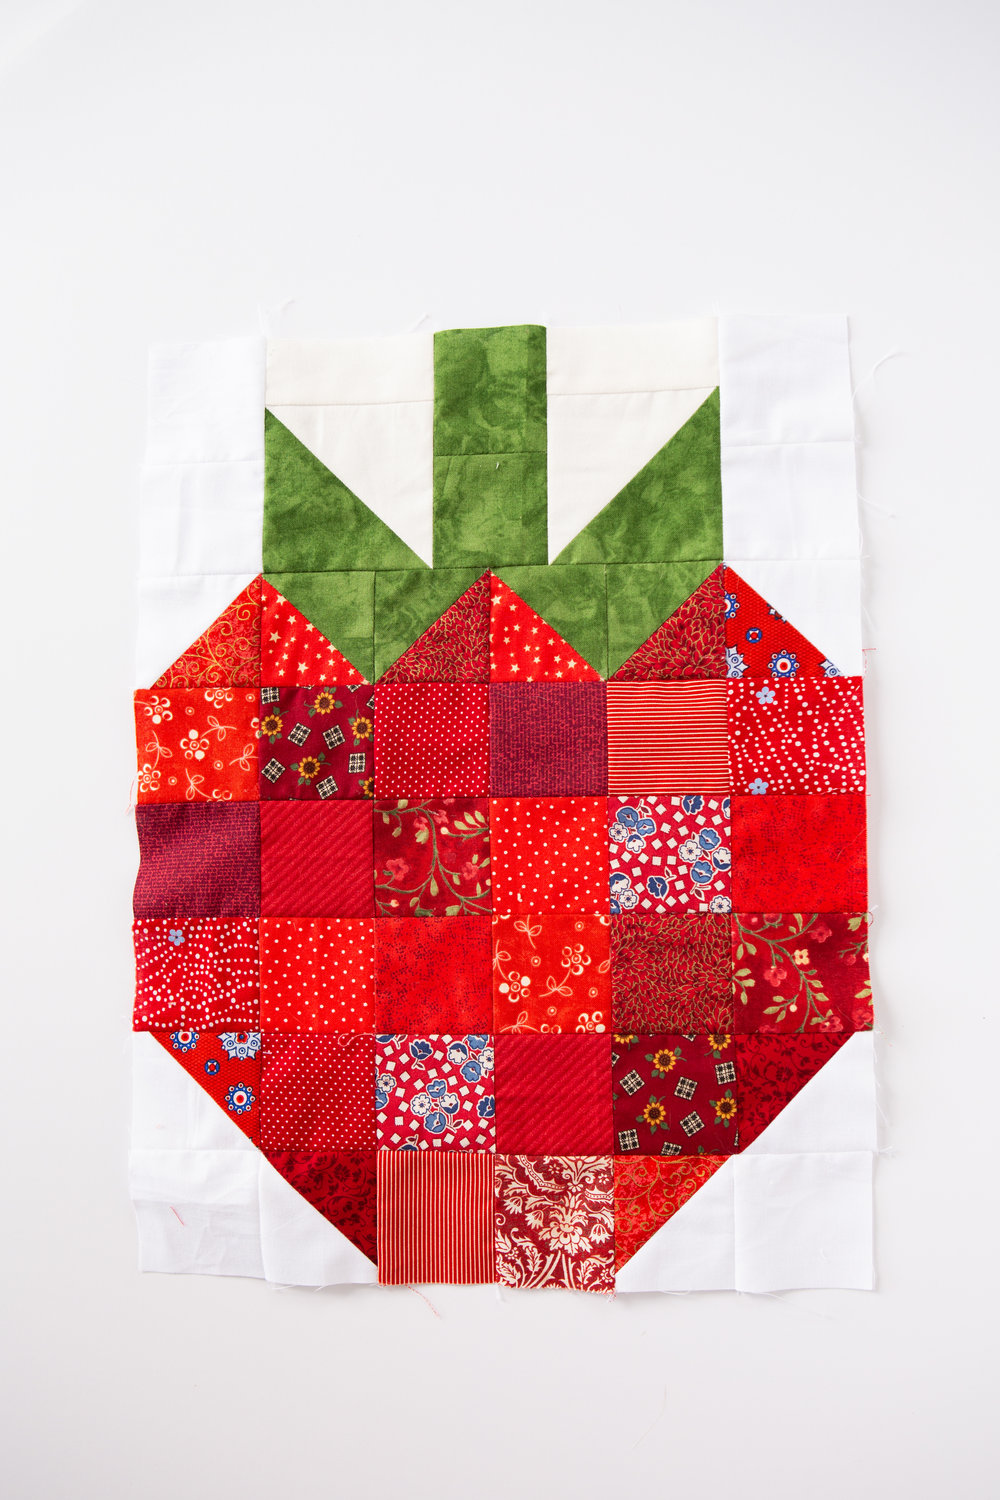 Strawberry Fields Forever - A Fruit Salad Block by Katie Mae Quilts